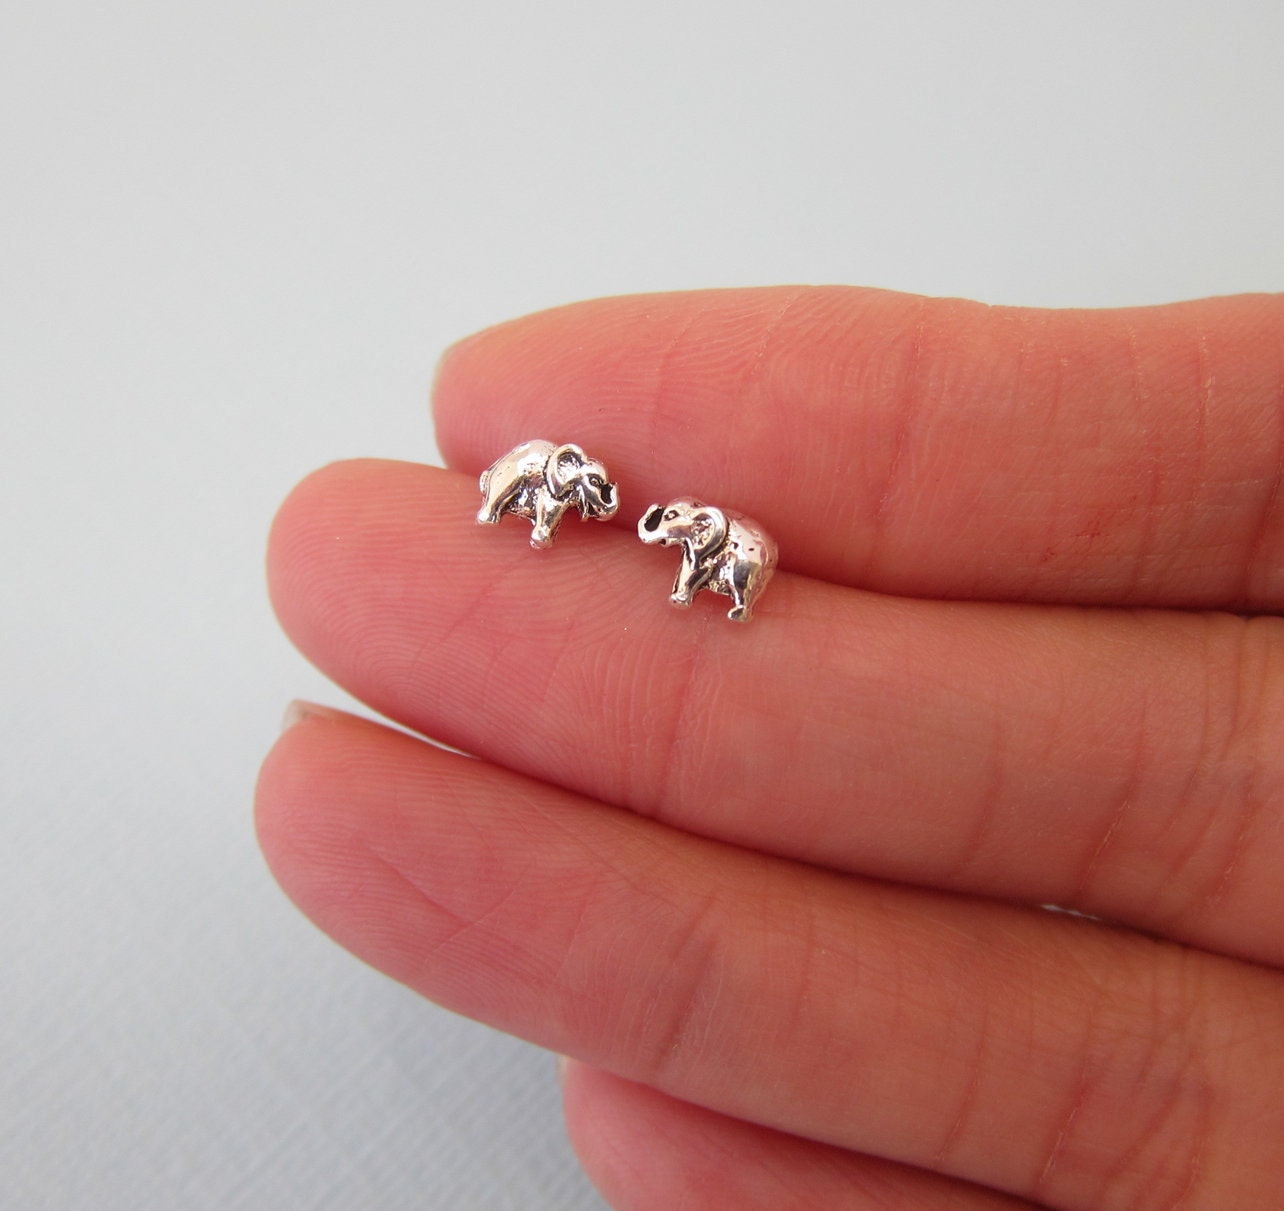 aliexpress jewelry with earrings accessories alibaba filled com gold design animal on stud baby in childrens item from lovely rose